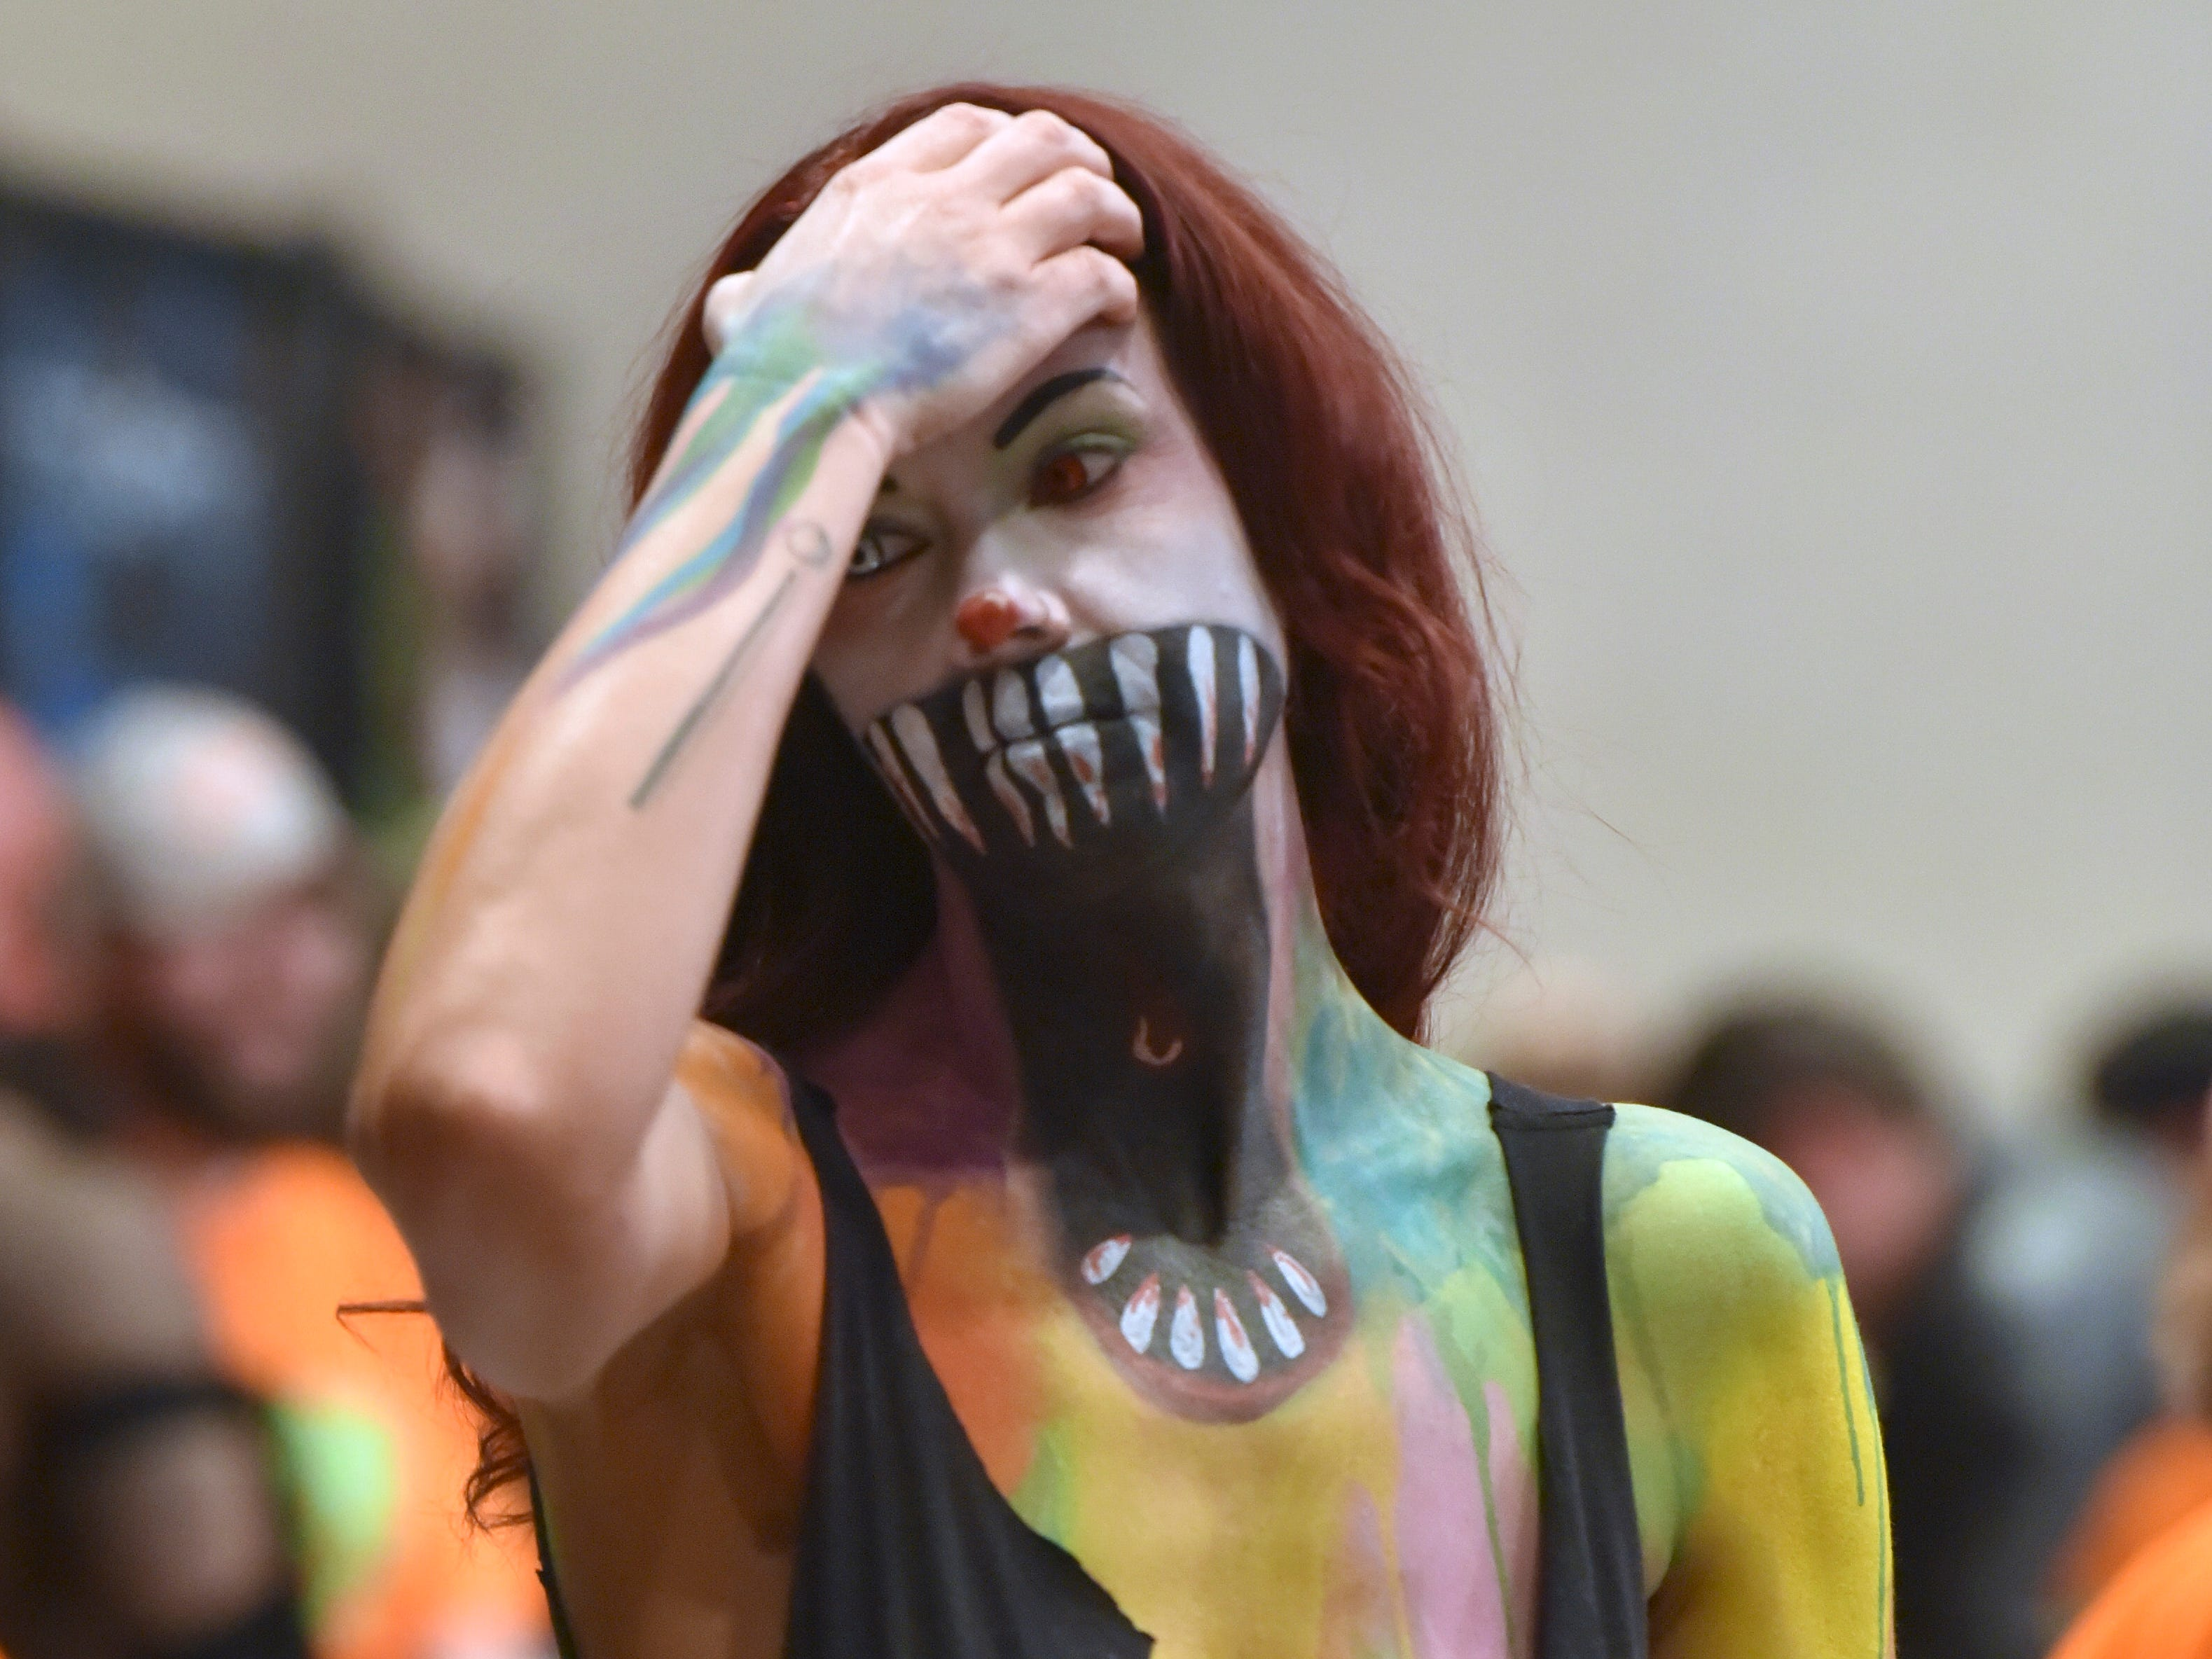 Kelly Ellison, of Dallas, TX, portrays a 'Scarey Clown,' after having her body painted by Get Dead Crew, make- up professionals.